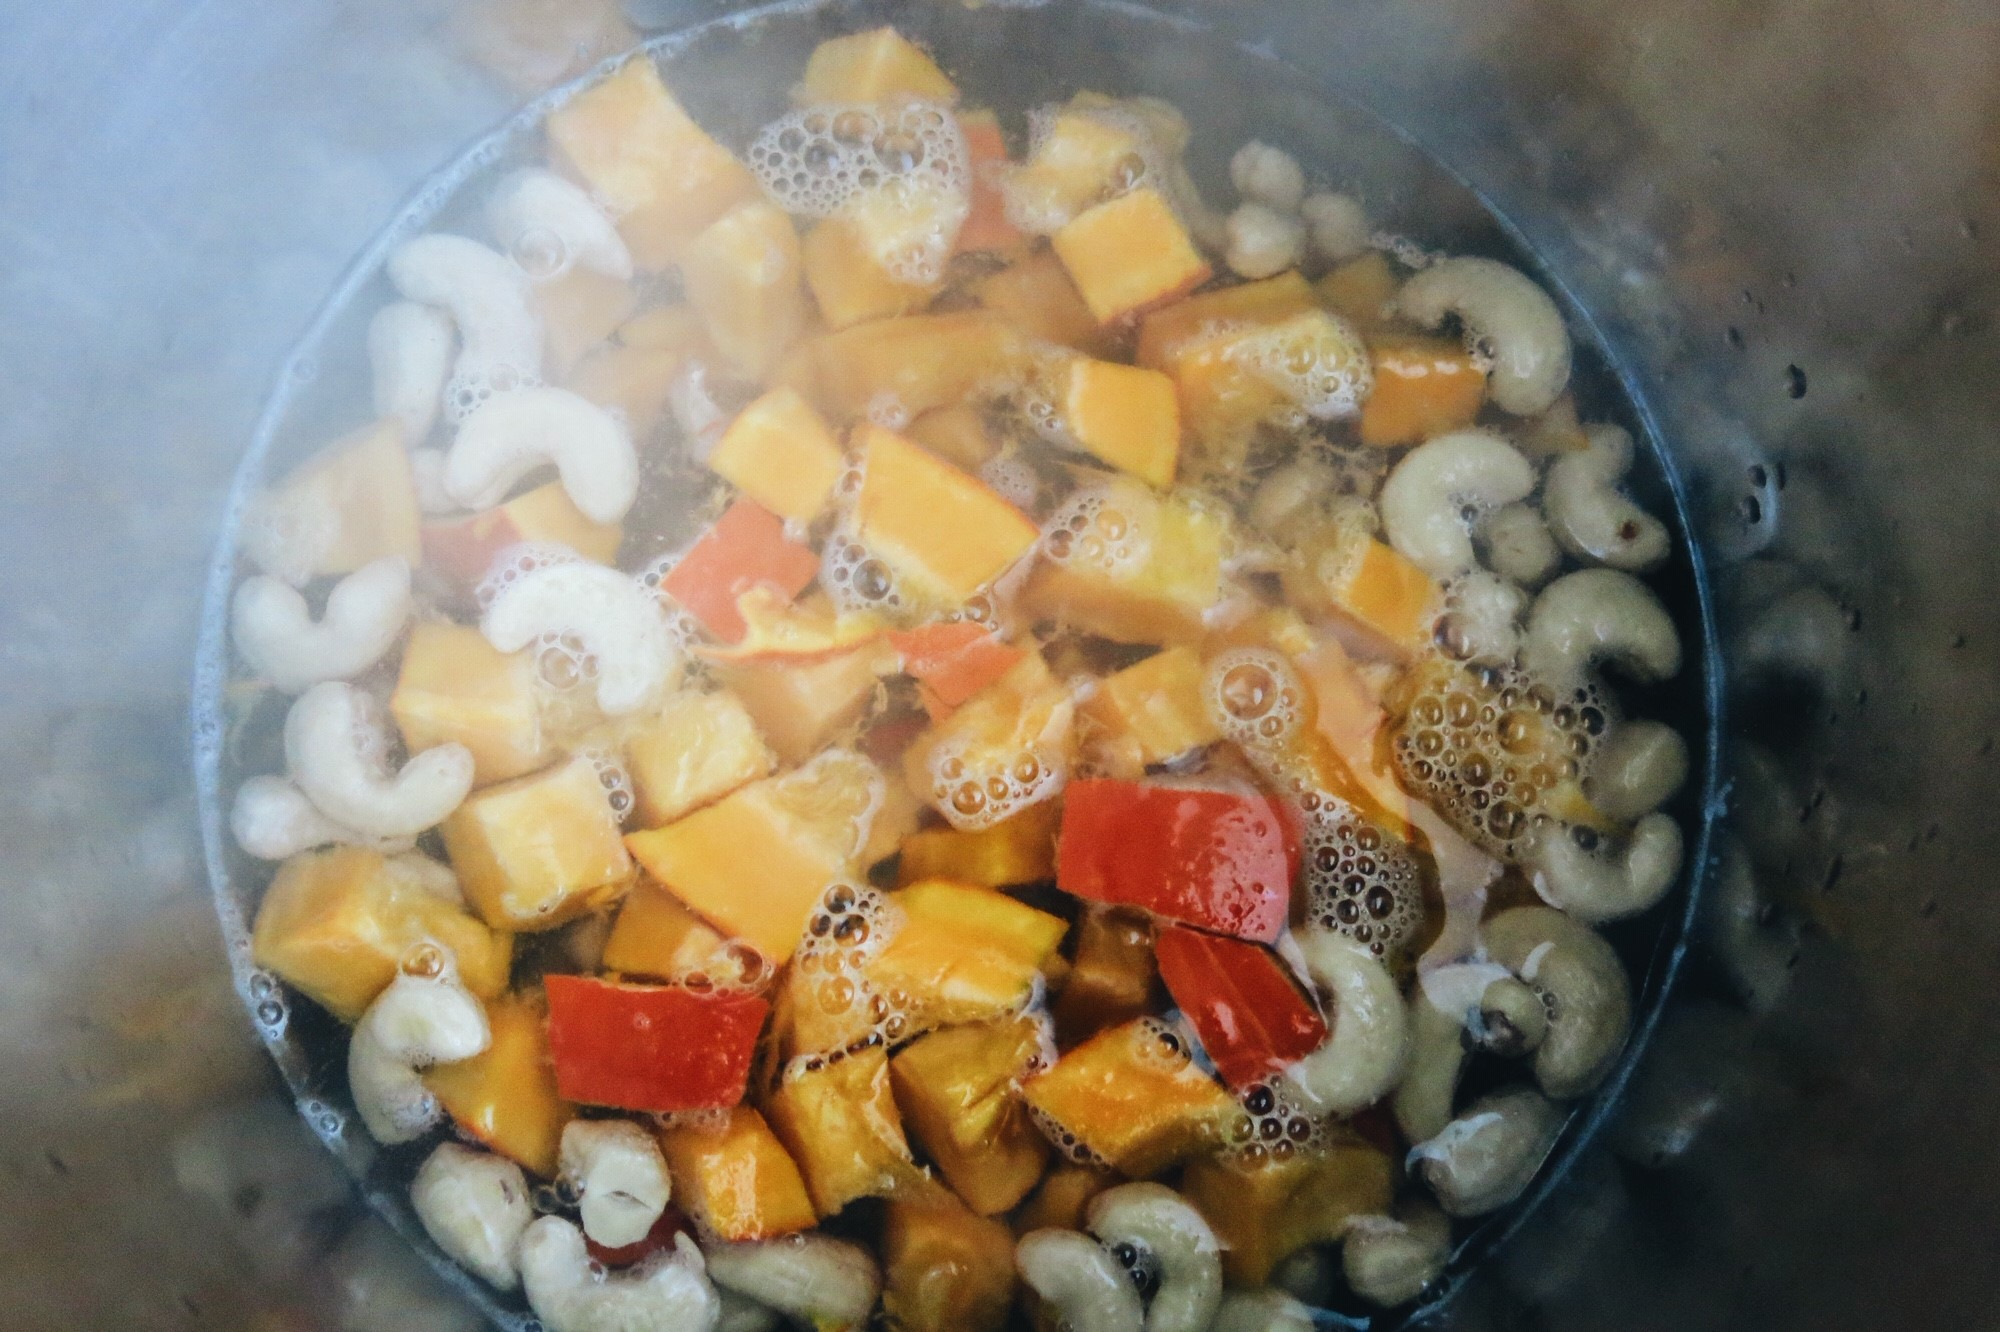 Cooking the pumpkin and cashews